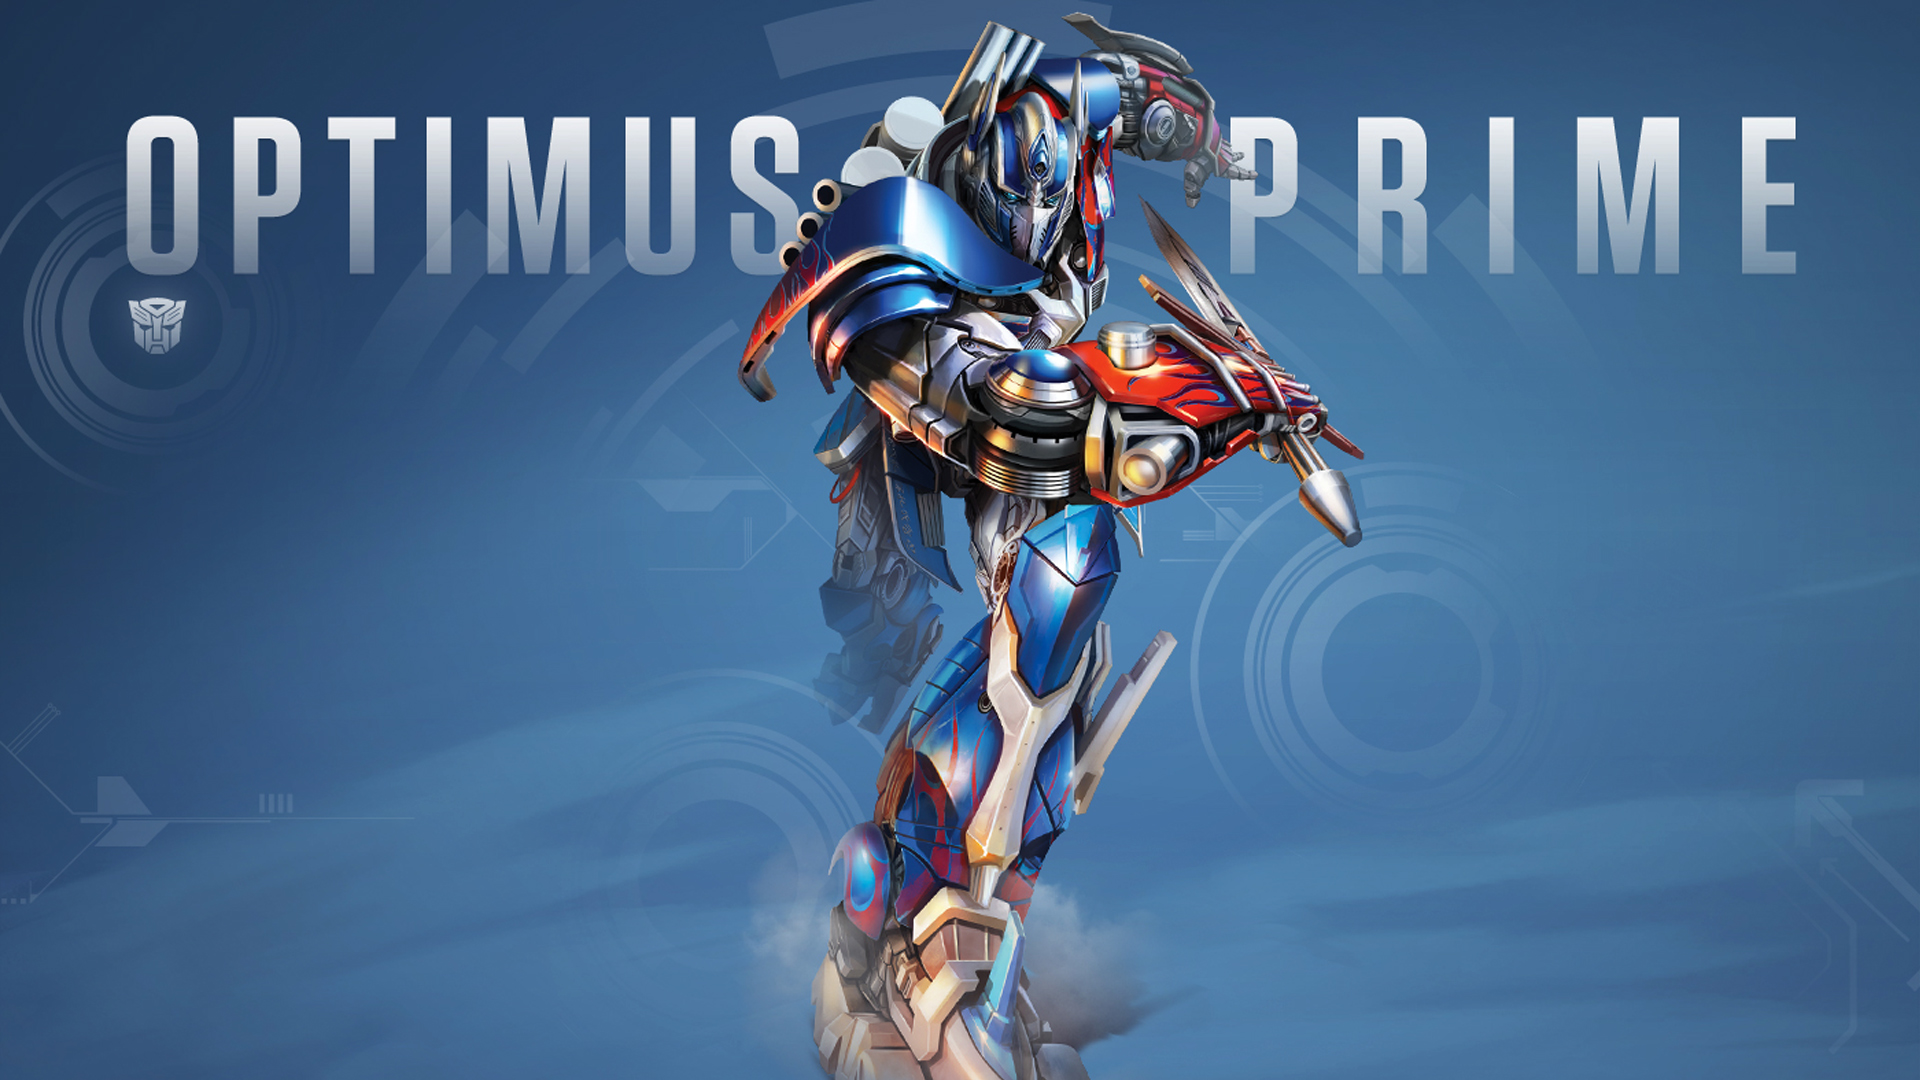 Optimus Prime Transformers 4 12 Wallpaper HD